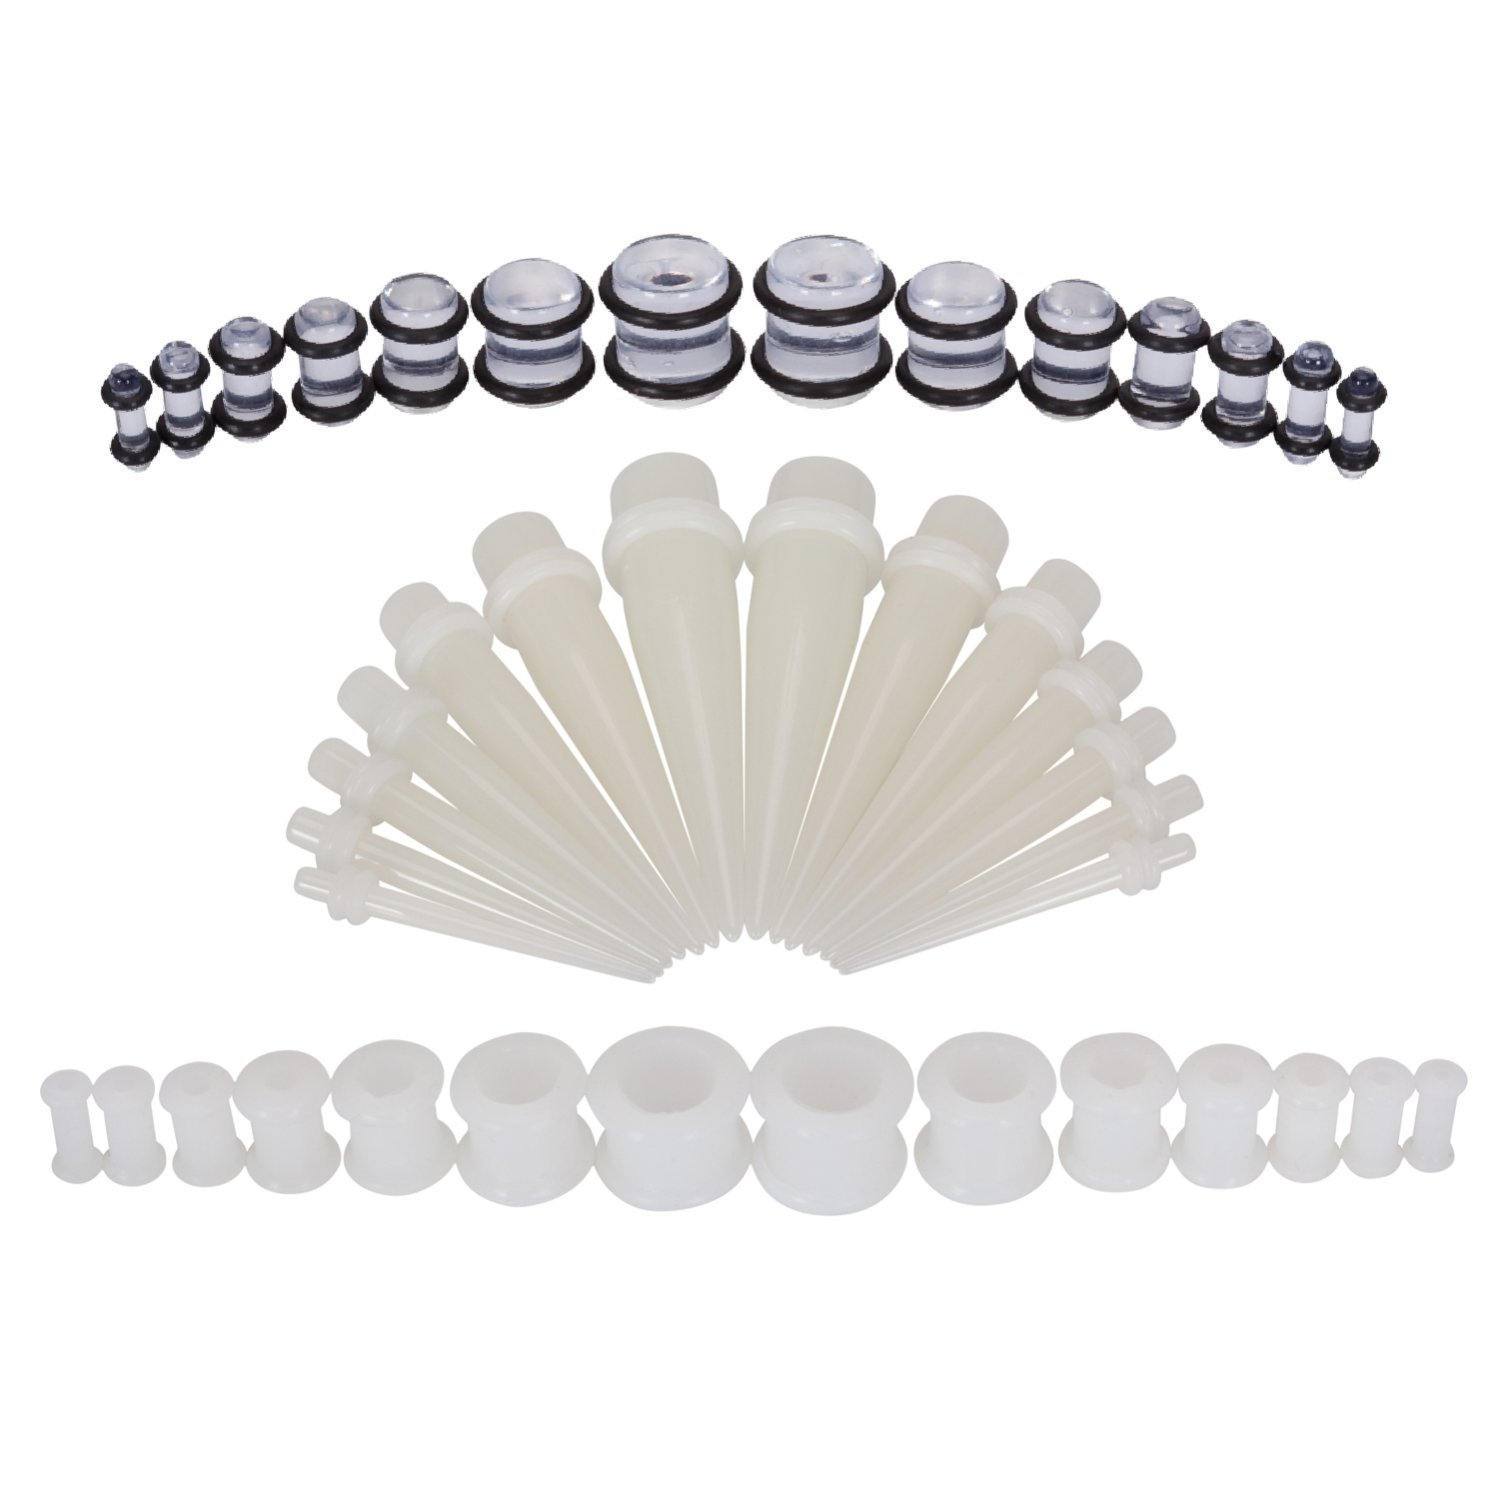 BodyJ4You 42PC Gauges Kit Ear Stretching 8G-12mm Tapers Plugs White Silicone Glow Dark Acrylic by BodyJ4You